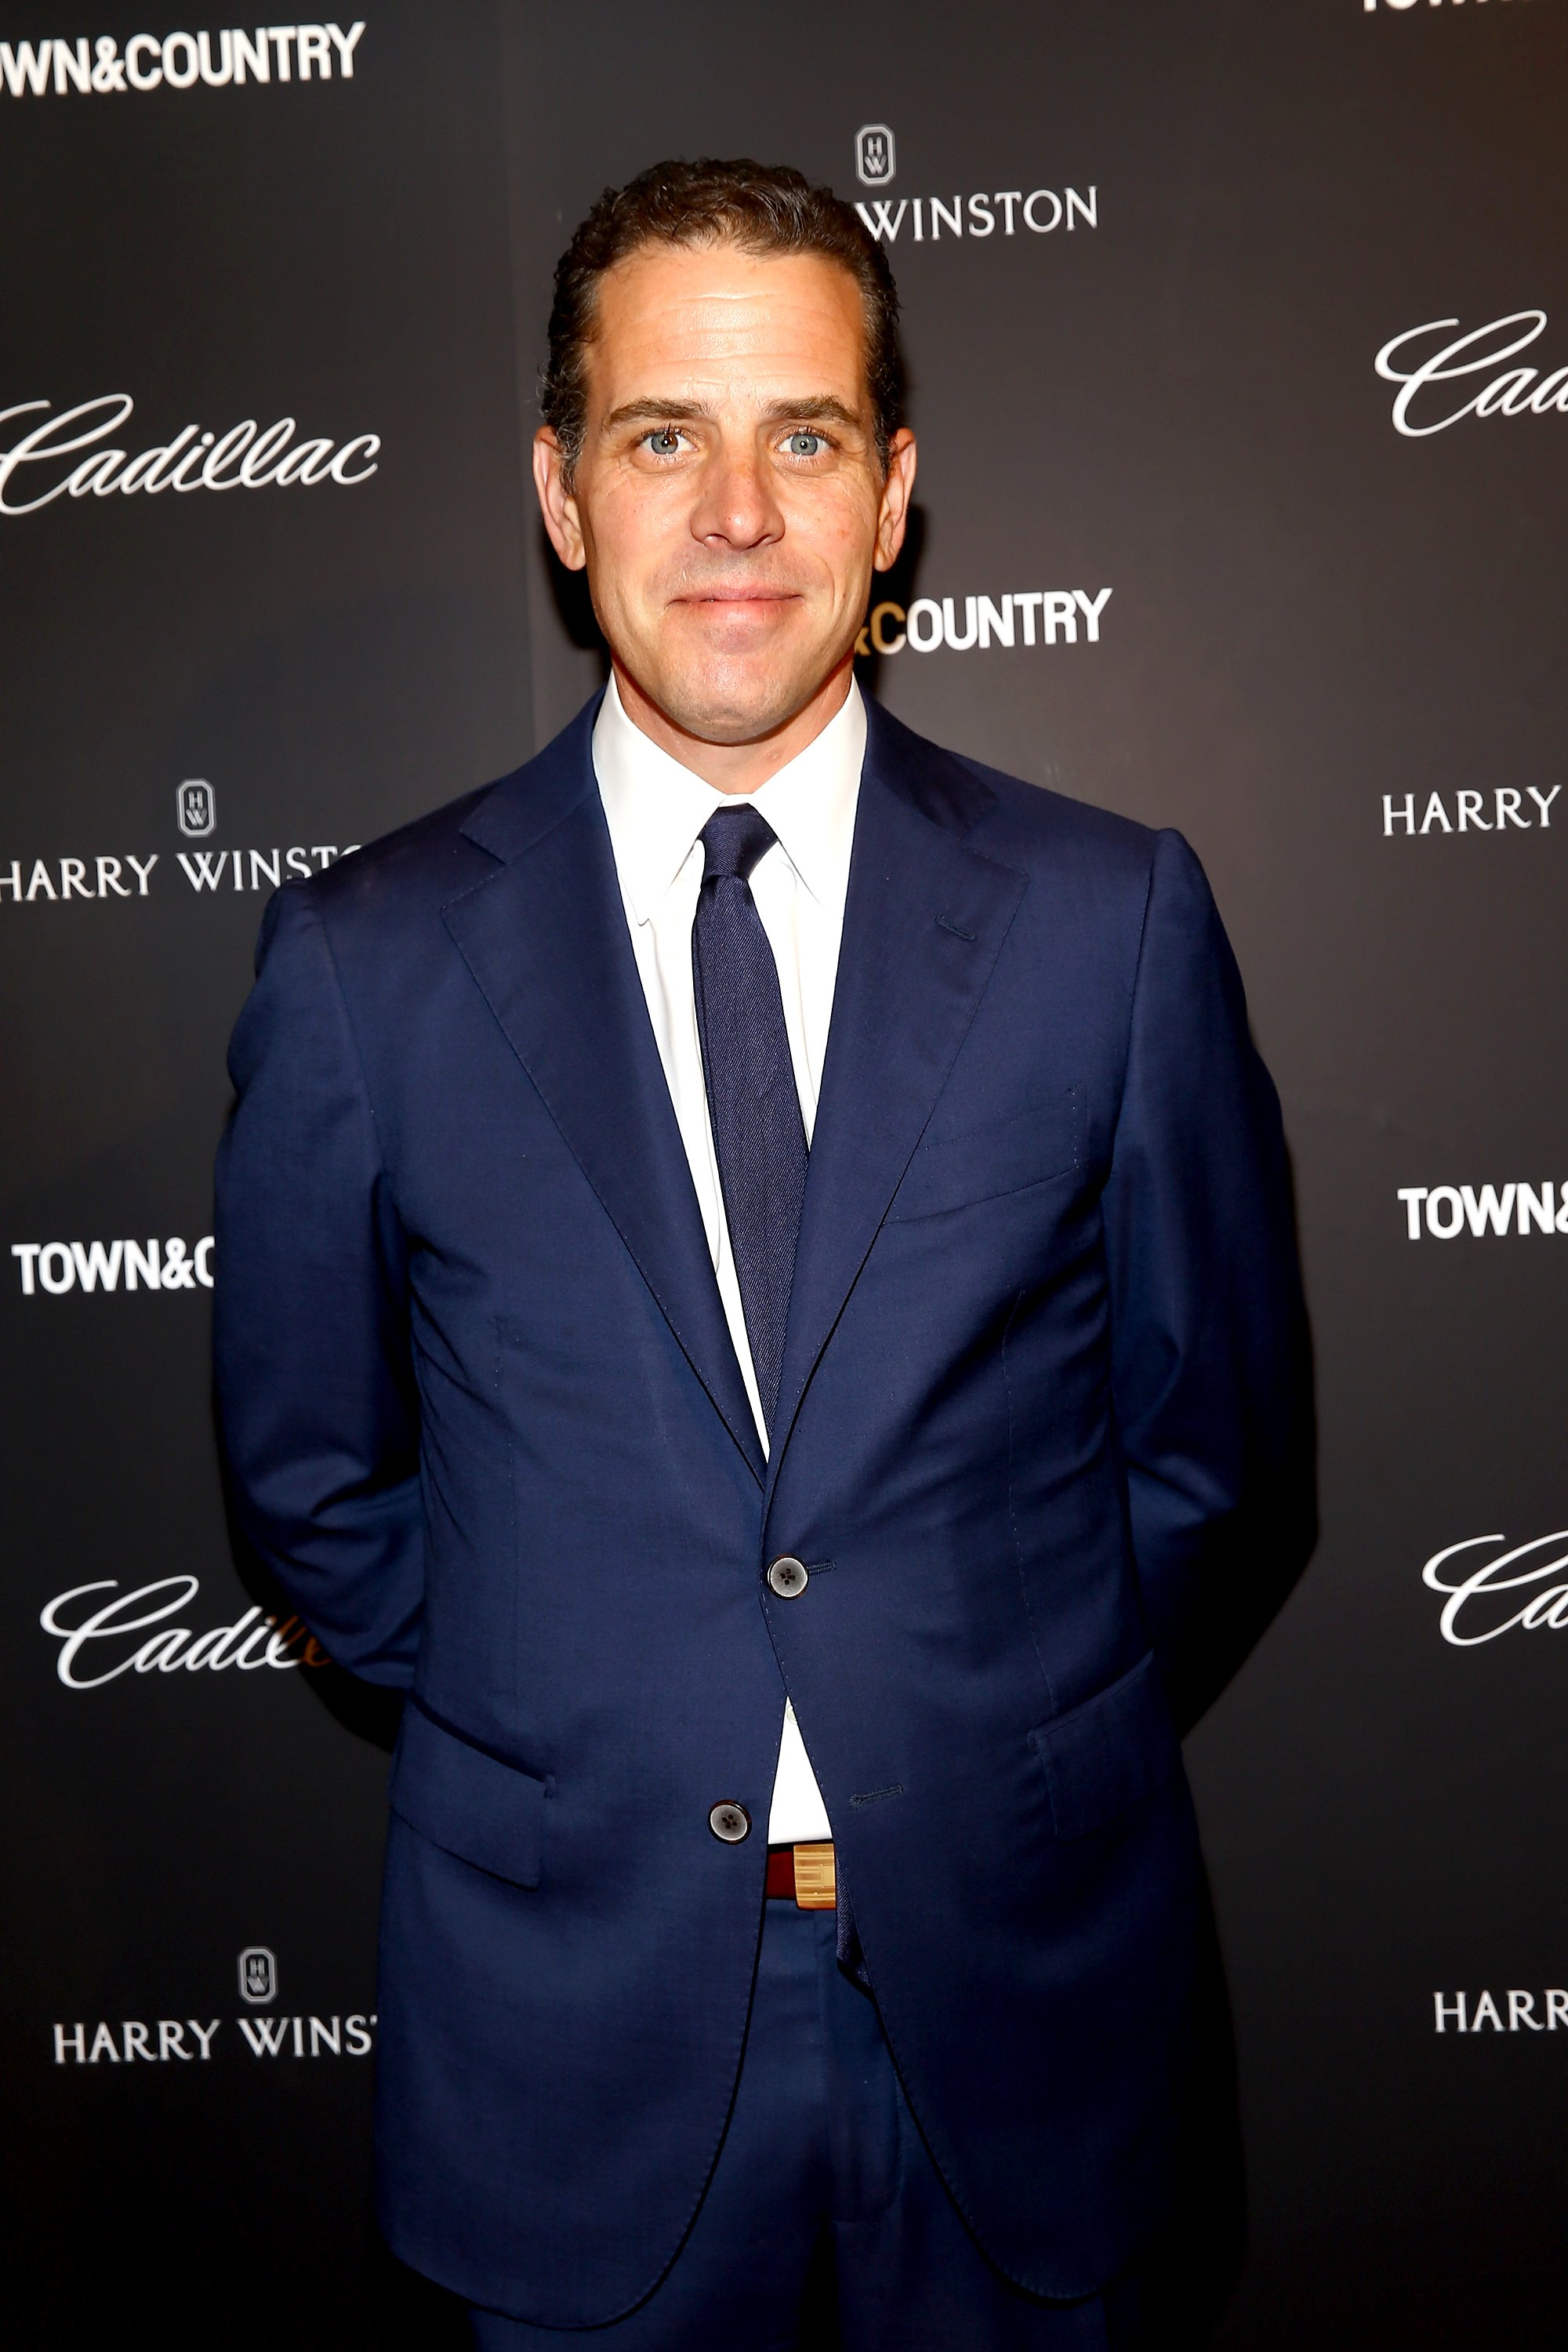 """Hunter Biden attends the T&C Philanthropy Summit with screening of """"Generosity Of Eye"""" at Lincoln Center with Town & Country on May 28, 2014 in New York City. (Photo by Astrid Stawiarz/Getty Images for Town & Country)"""